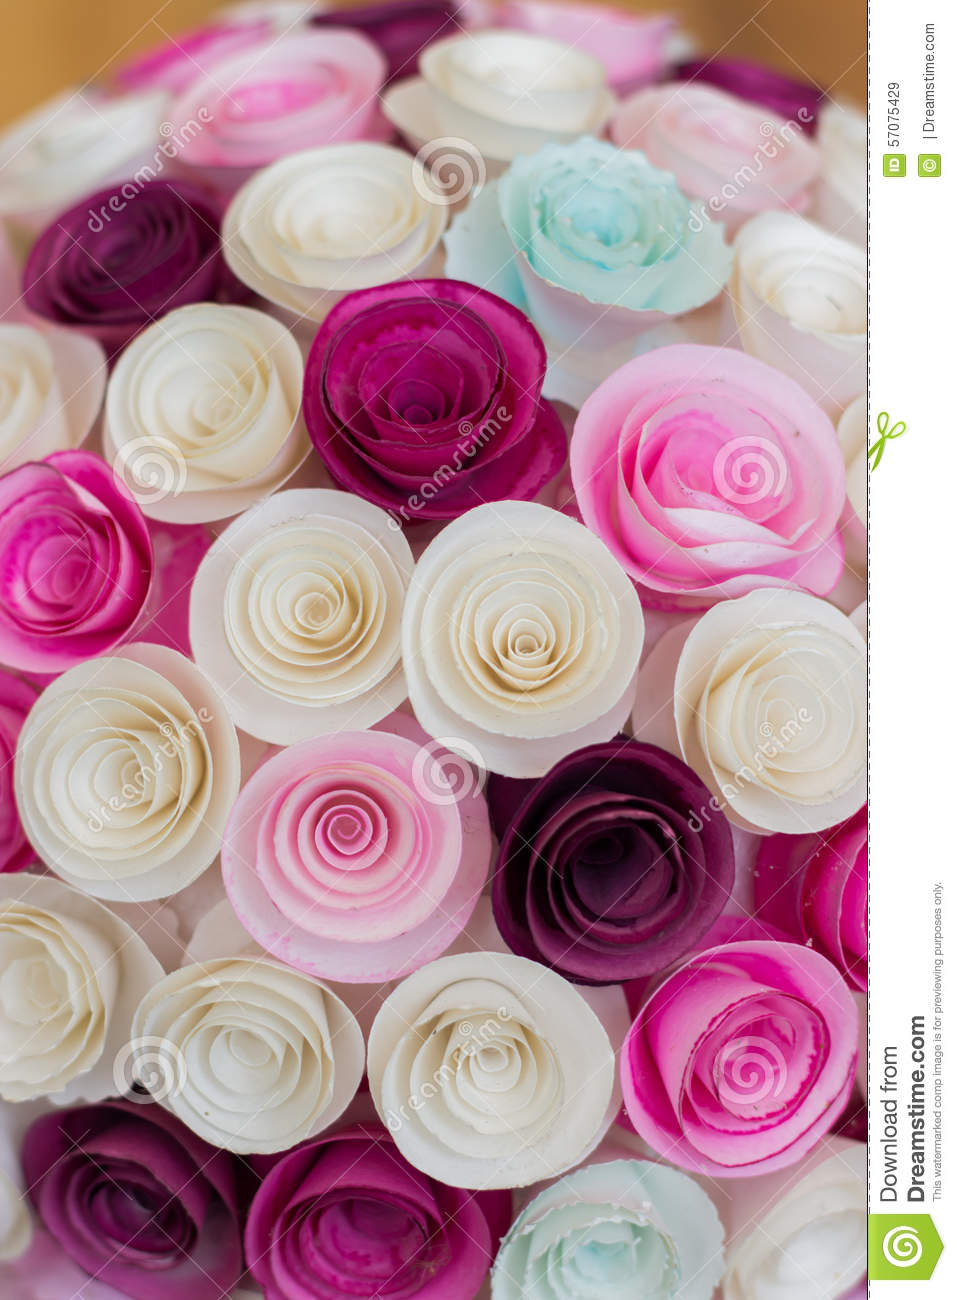 Paper Flowers Ball Stock Image Image Of Purple Origami 57075429